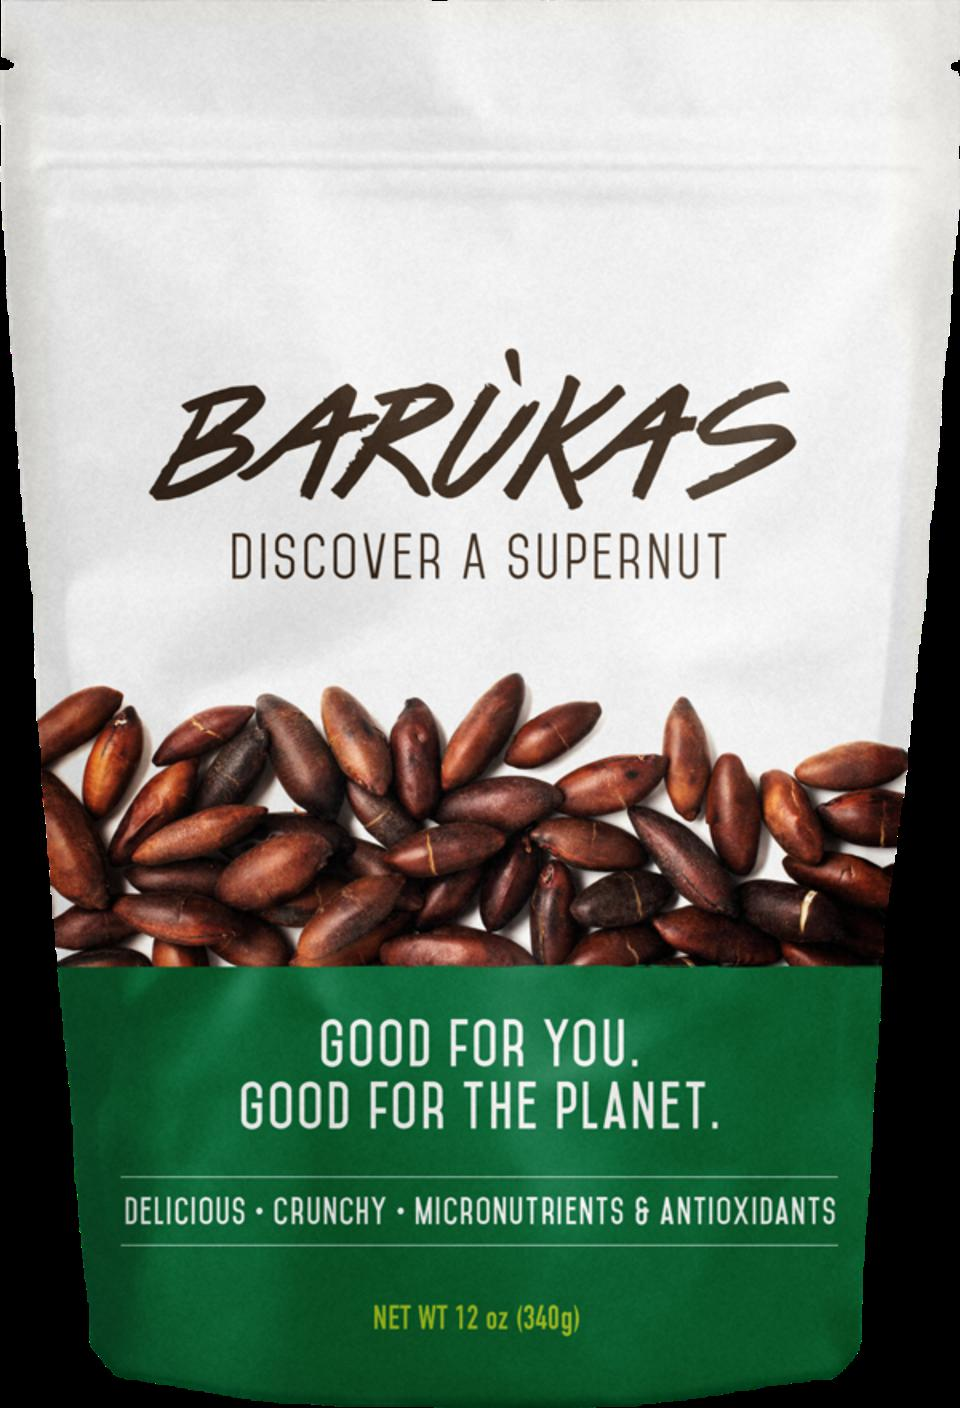 Barukas nuts from Brazil are sustainable and high in protein